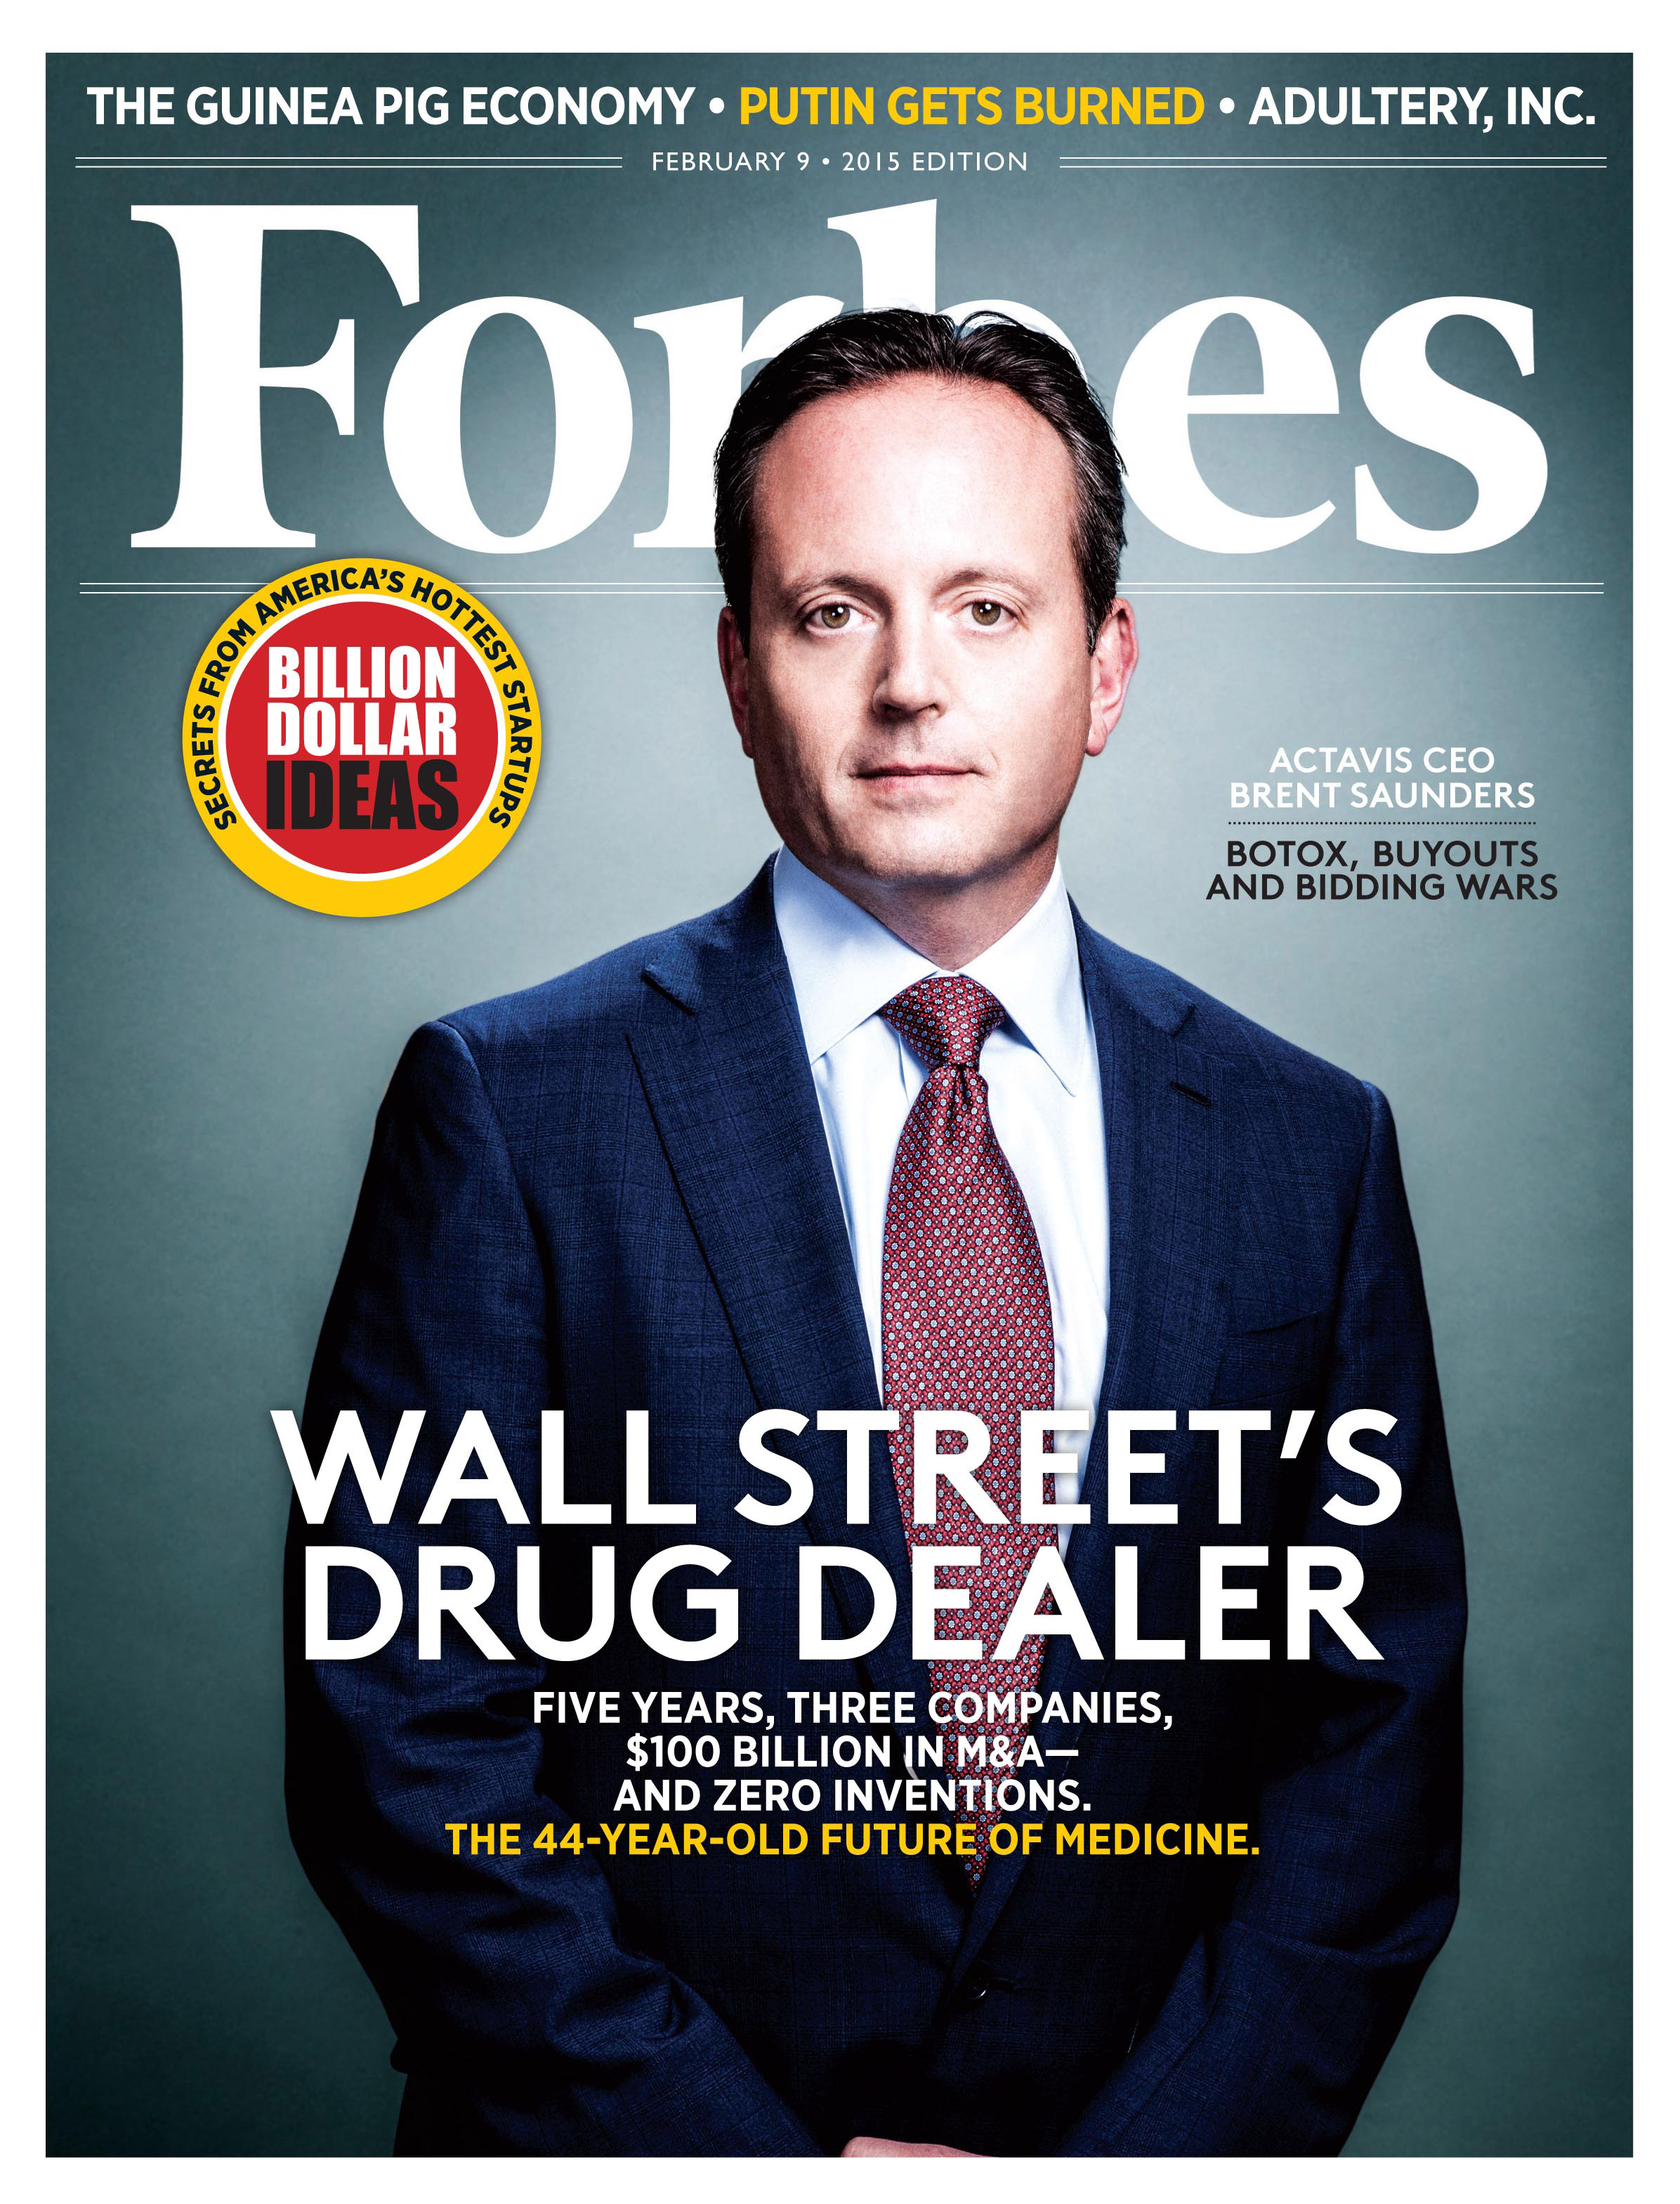 forbes-cover-020915web